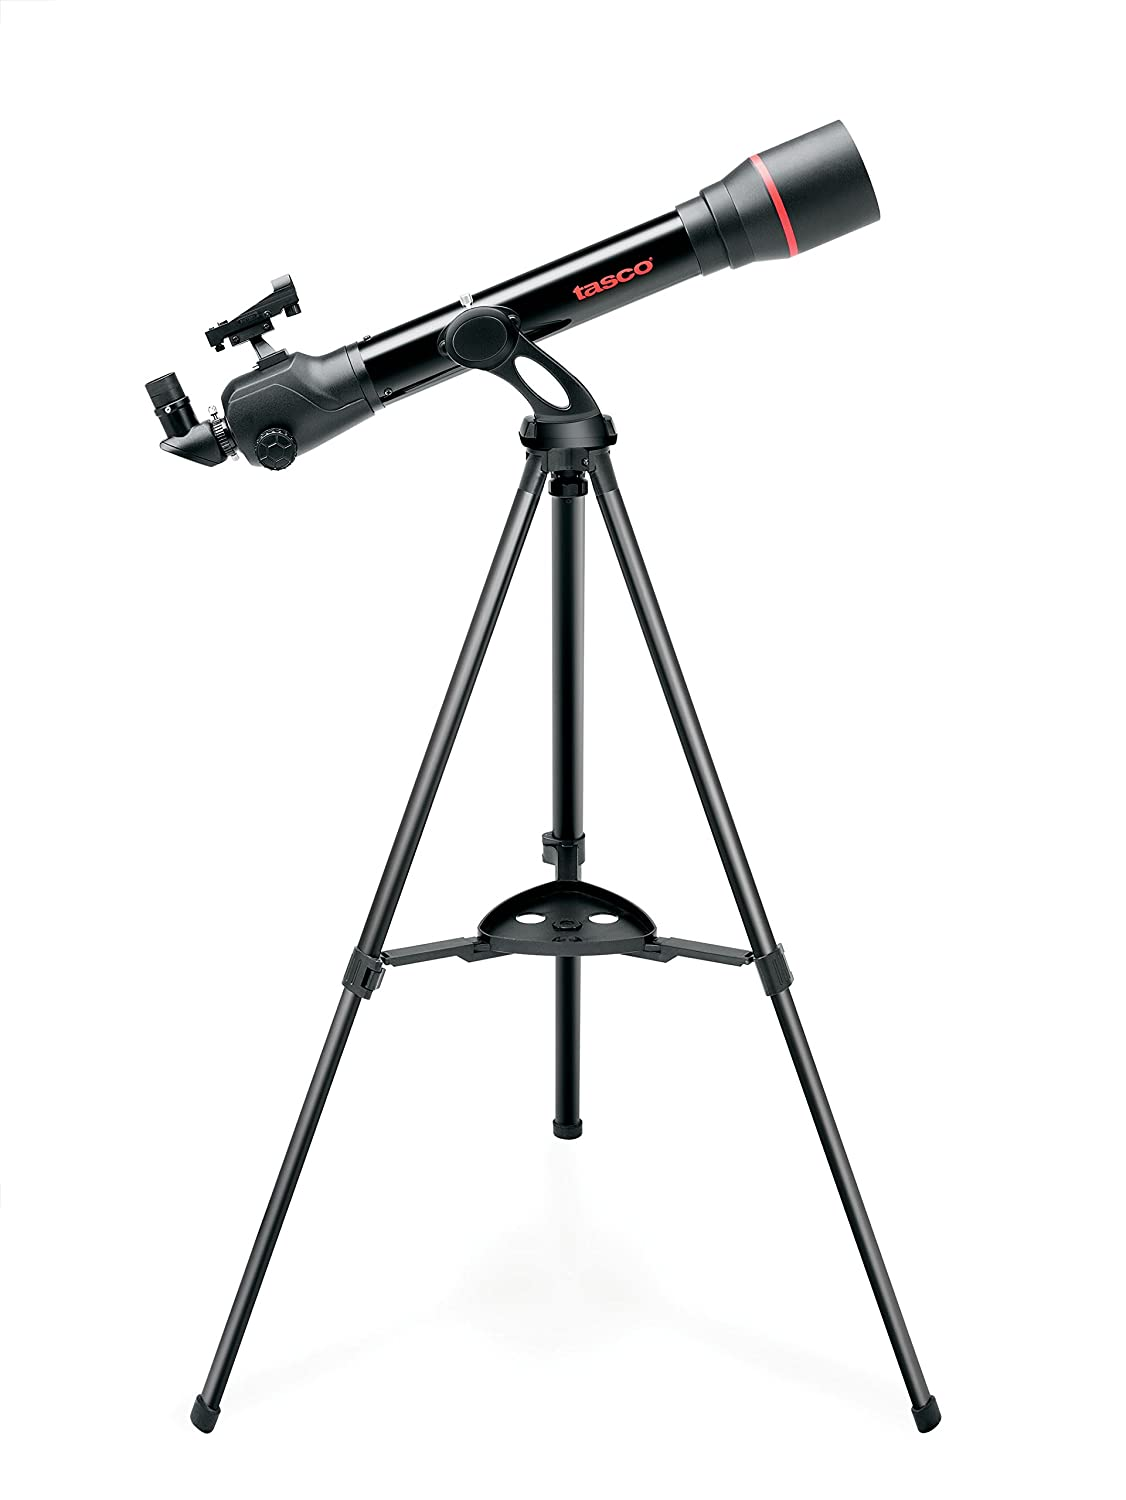 Tasco Spacestation 70x 800mm Refractor AZ with Variable LED Red Dot Finderscope Telescope 49070800